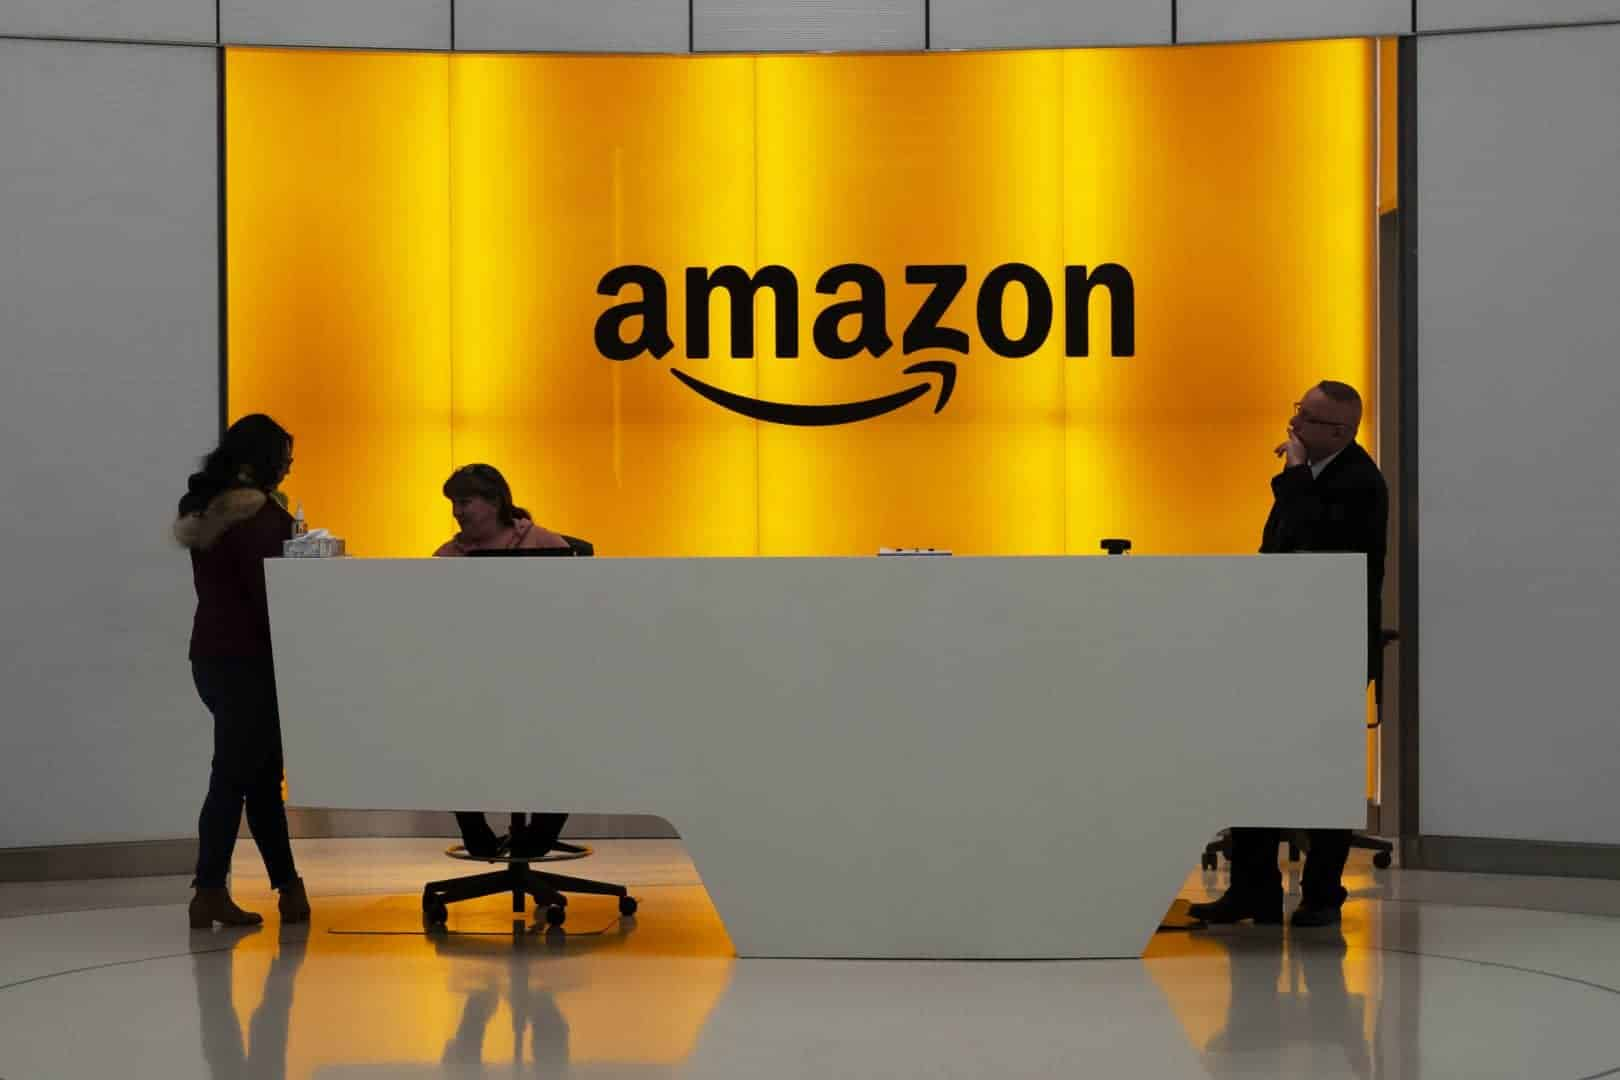 Amazon plans to hire 100,000 more workers to cope with coronavirus